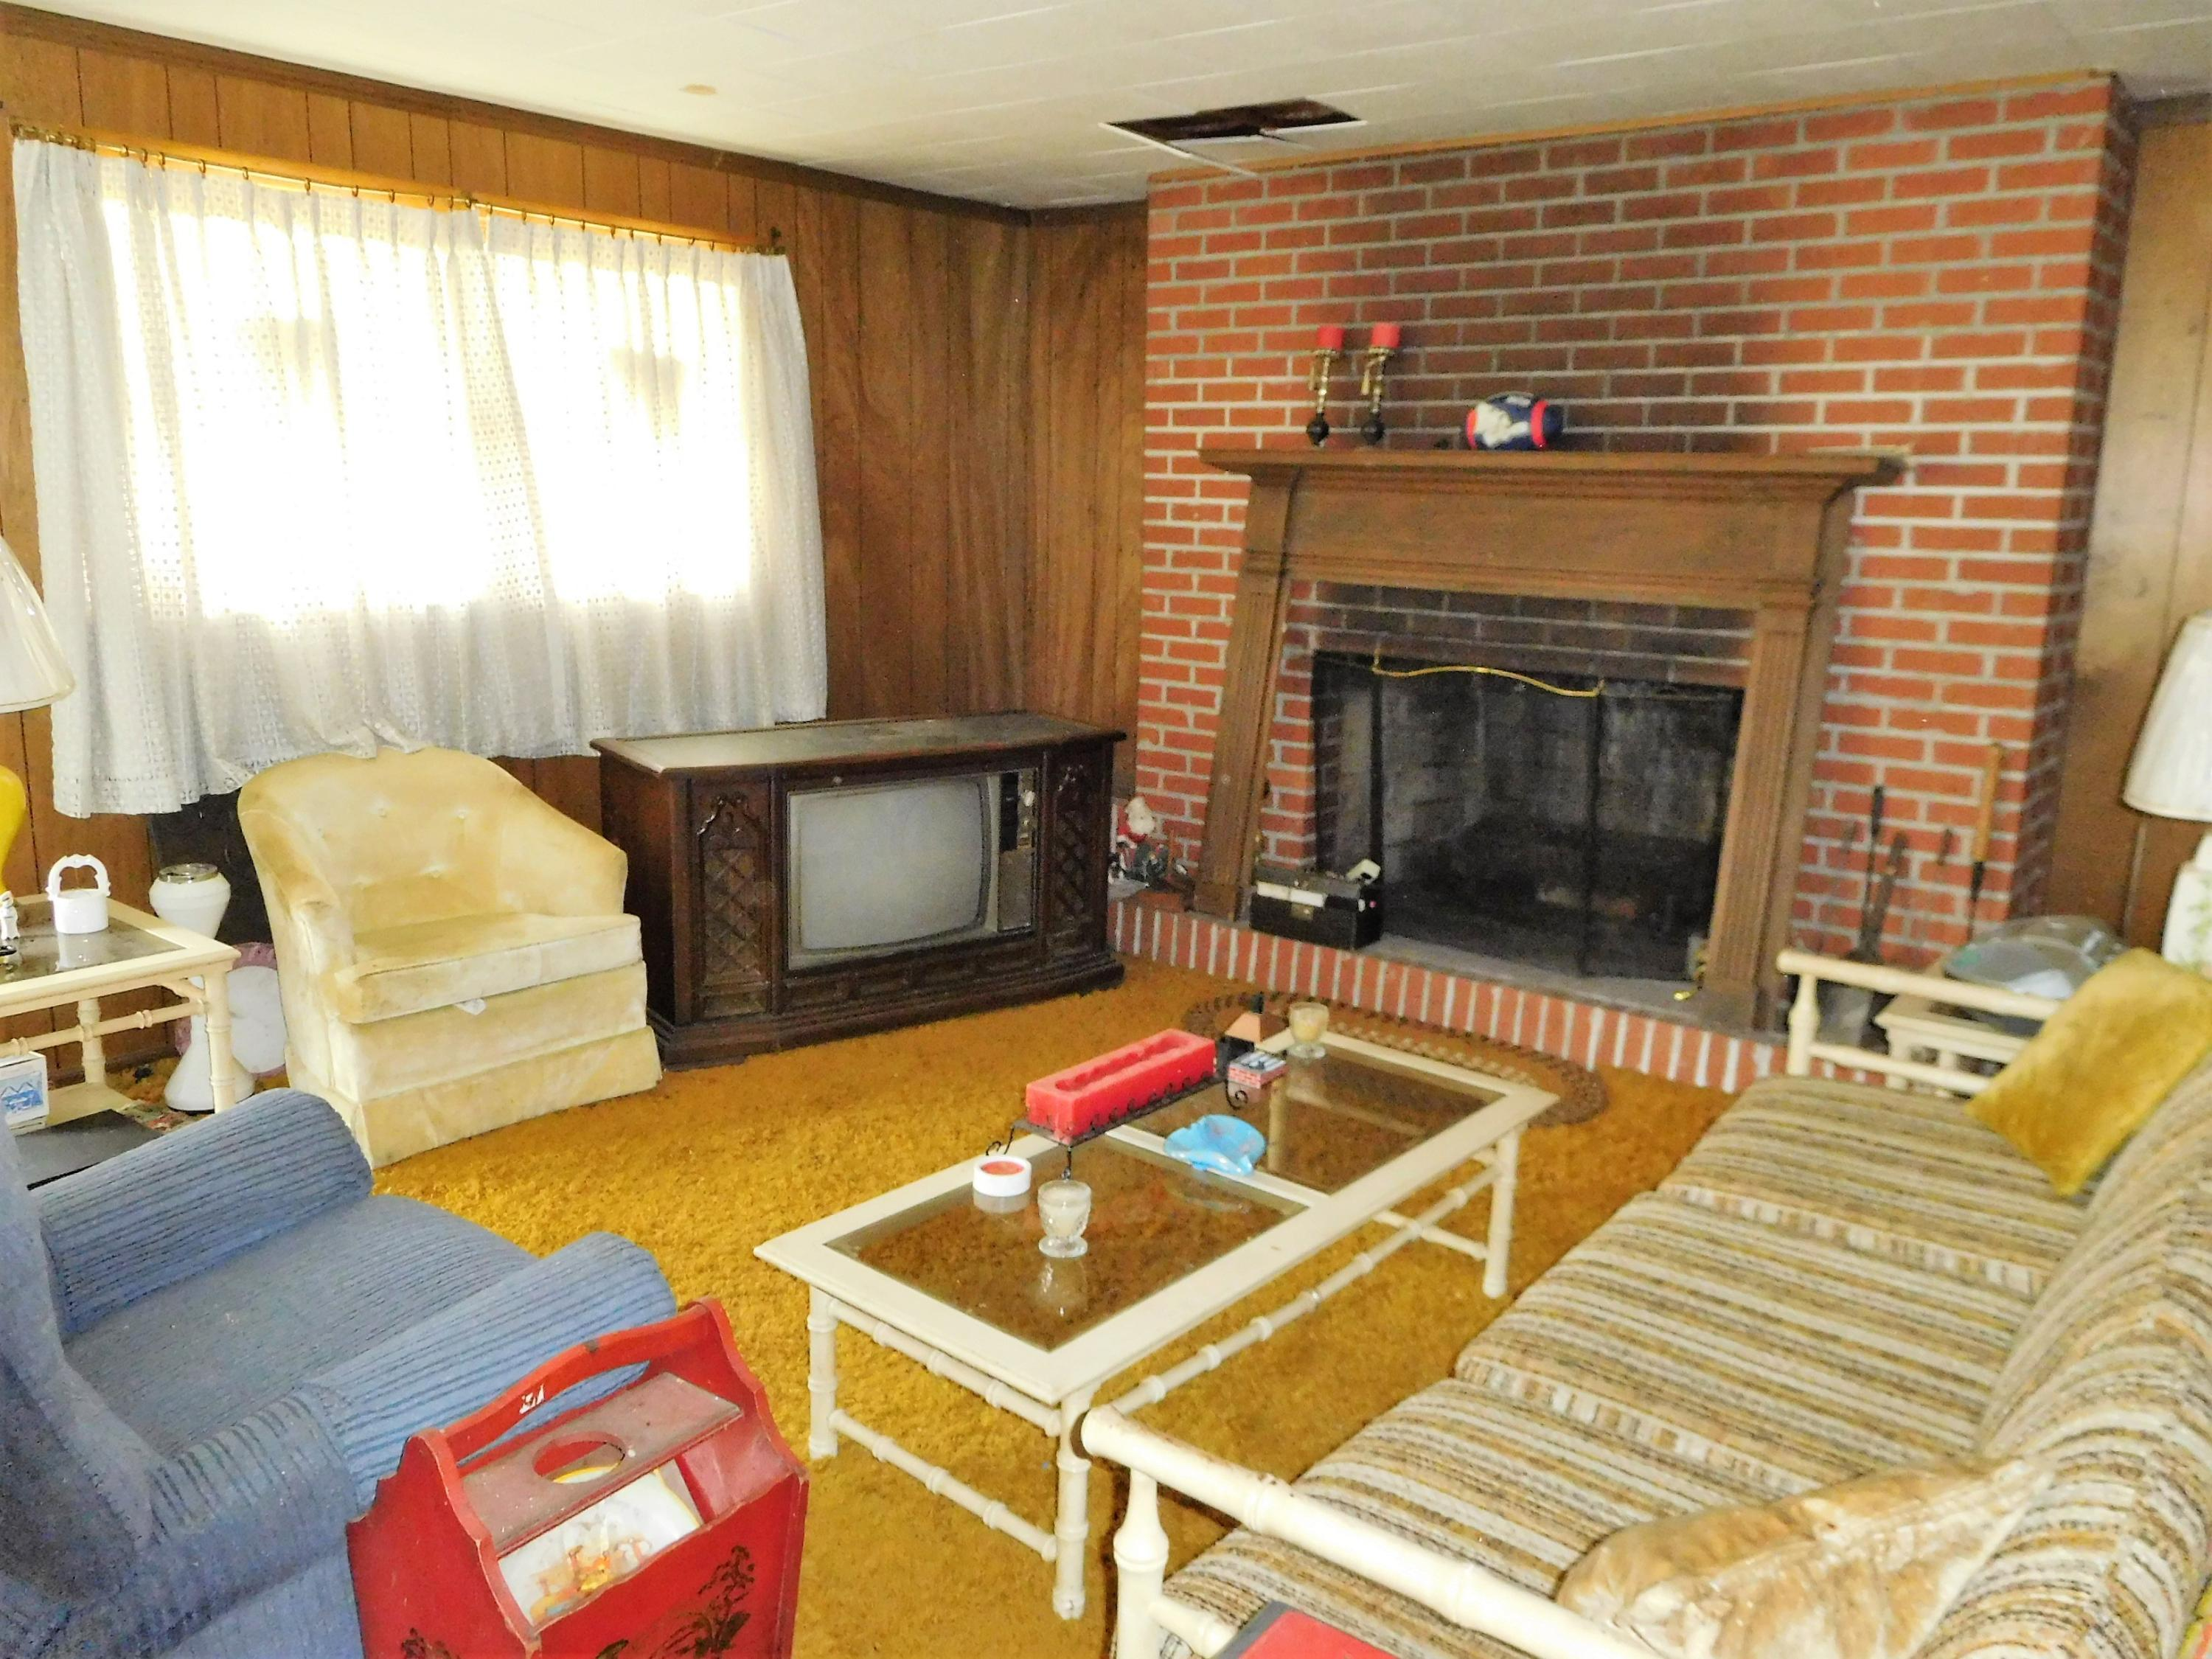 2347 Athens Co Road 107, Glouster, Ohio 45732, 2 Bedrooms Bedrooms, ,Residential,For Sale,Athens Co Road 107,218010721